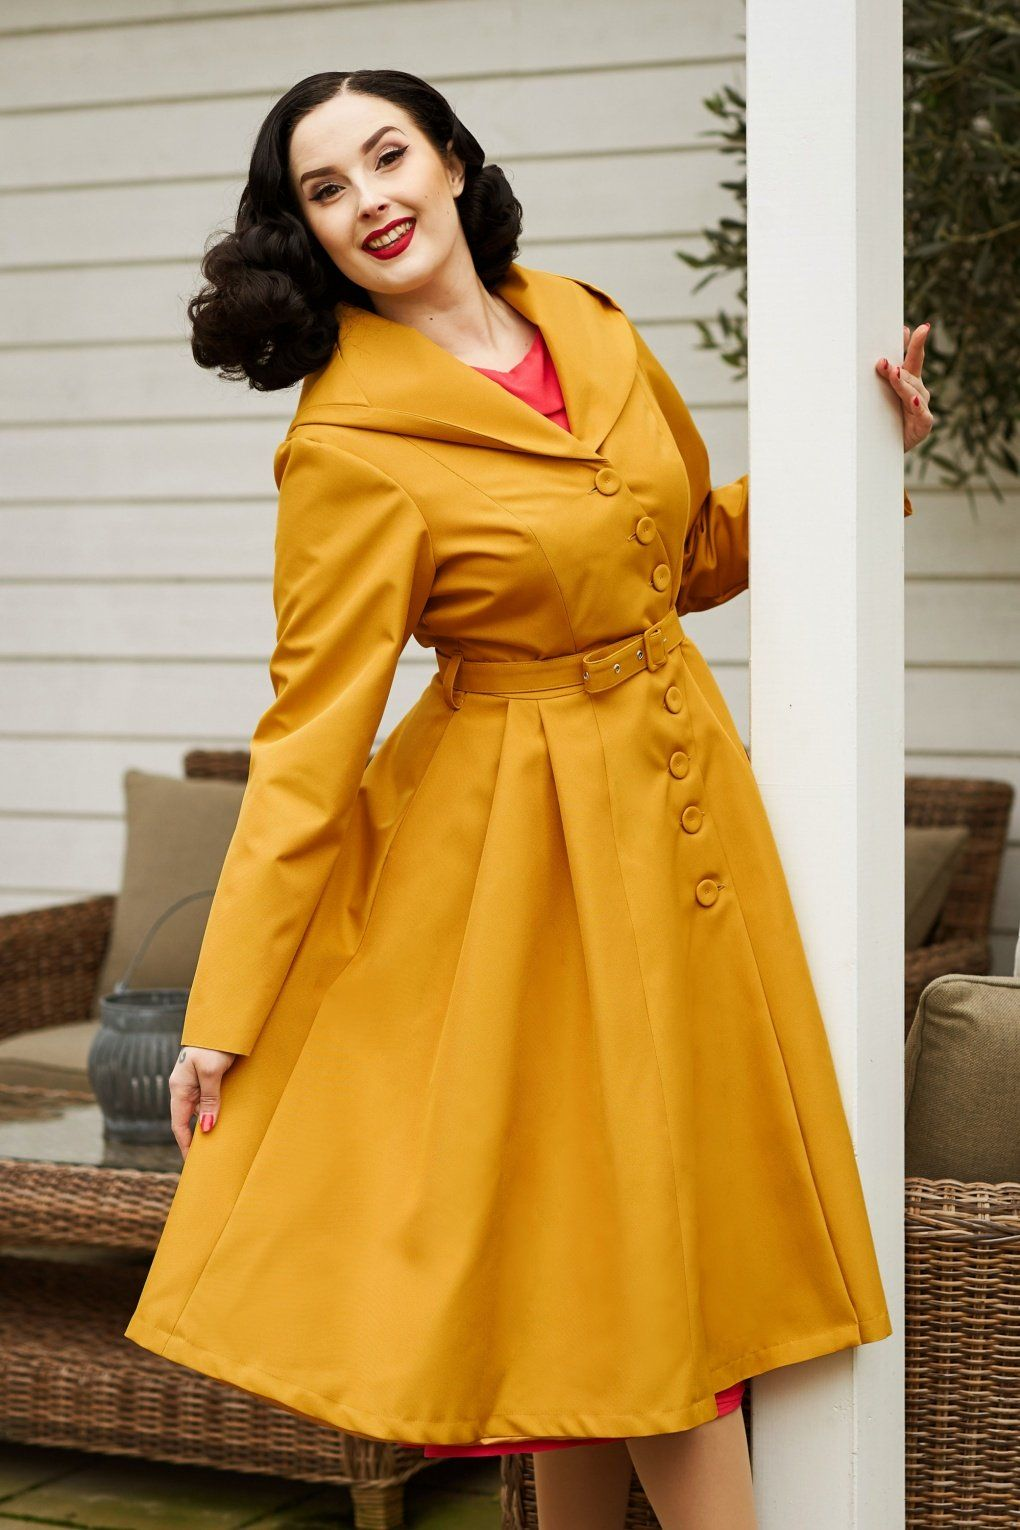 50s Lorin Sun Swing Trench Coat In Mustard Fantastic Clothes Gorgeous Clothes Swing Skirt [ 1530 x 1020 Pixel ]